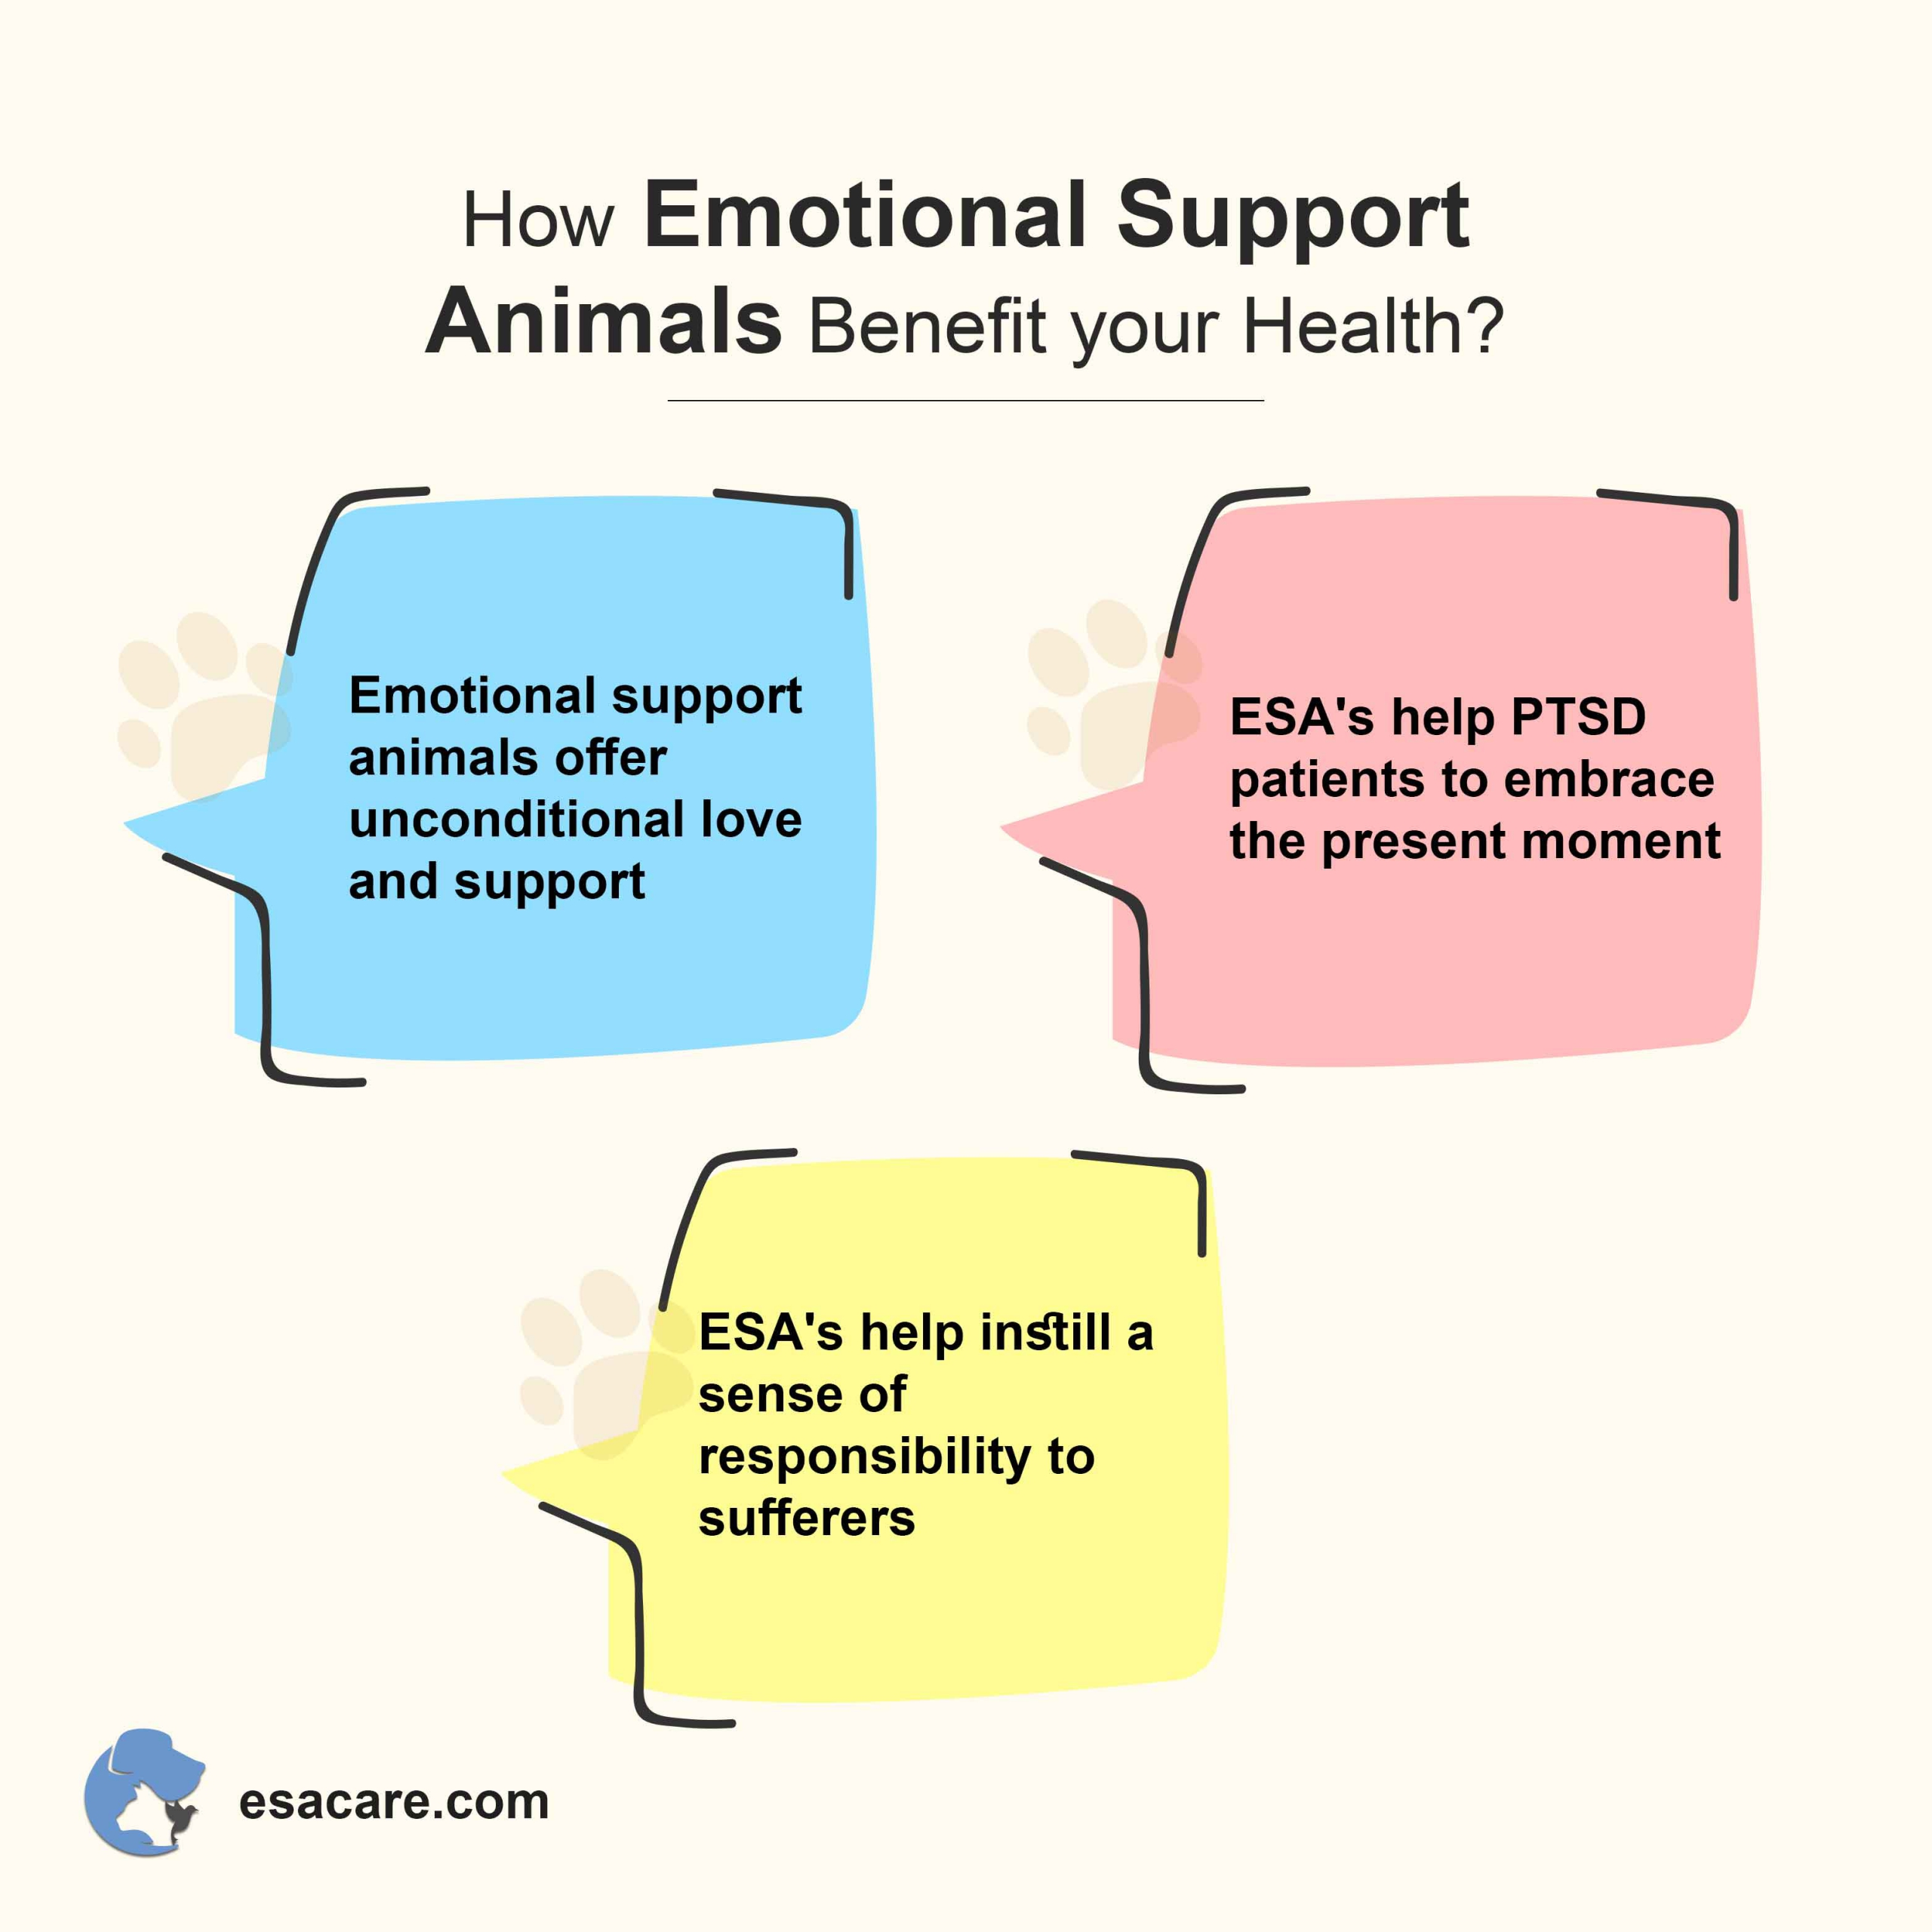 Emotional support animals